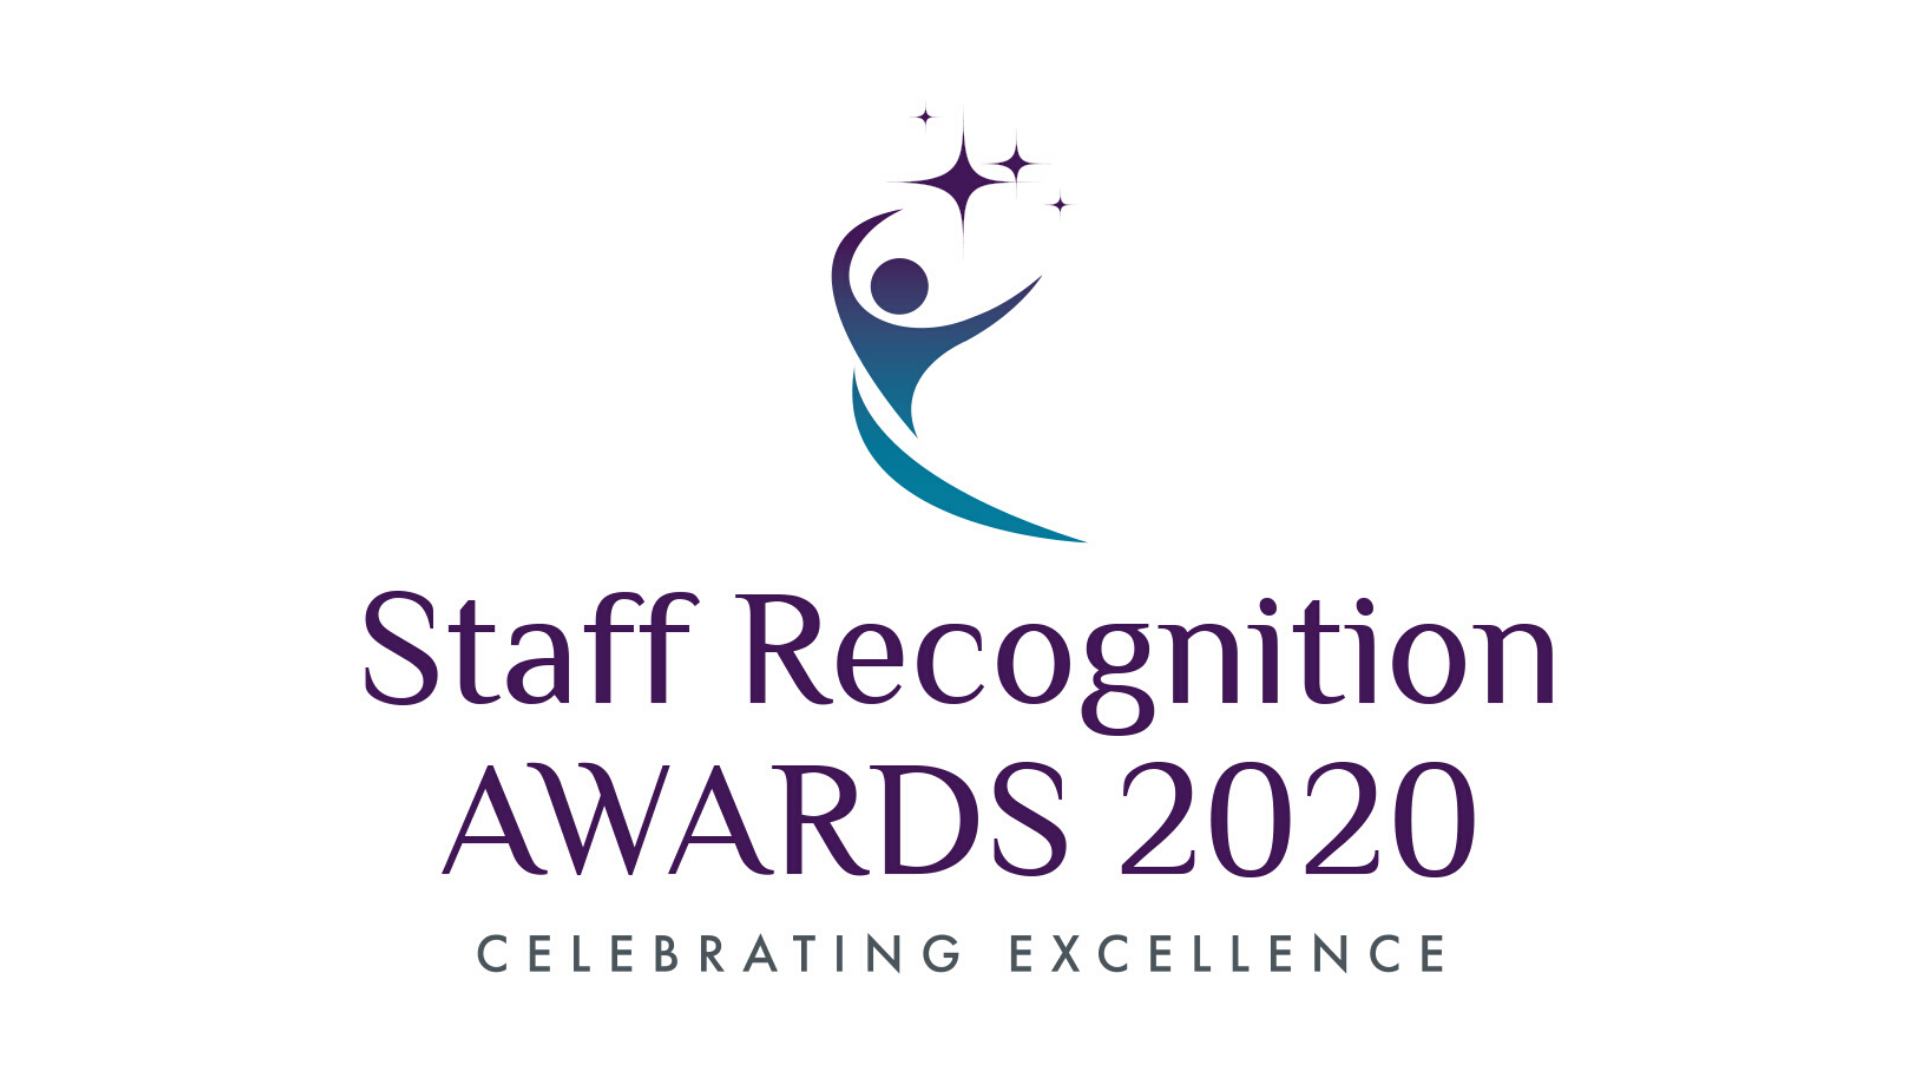 Staff Recognition Awards 2020